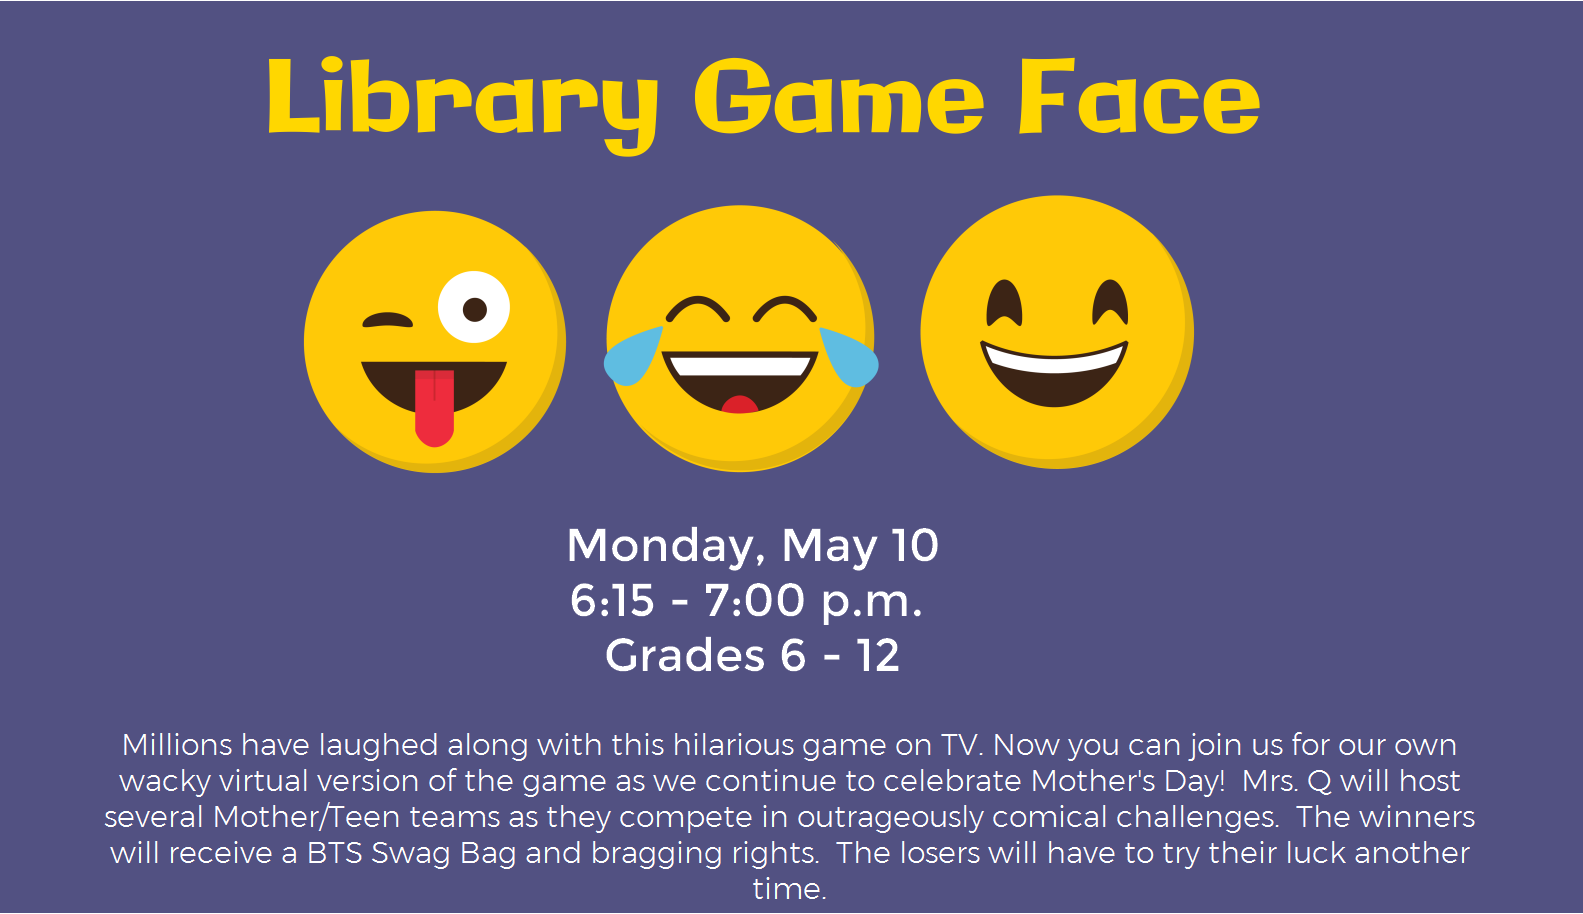 Library Game Face